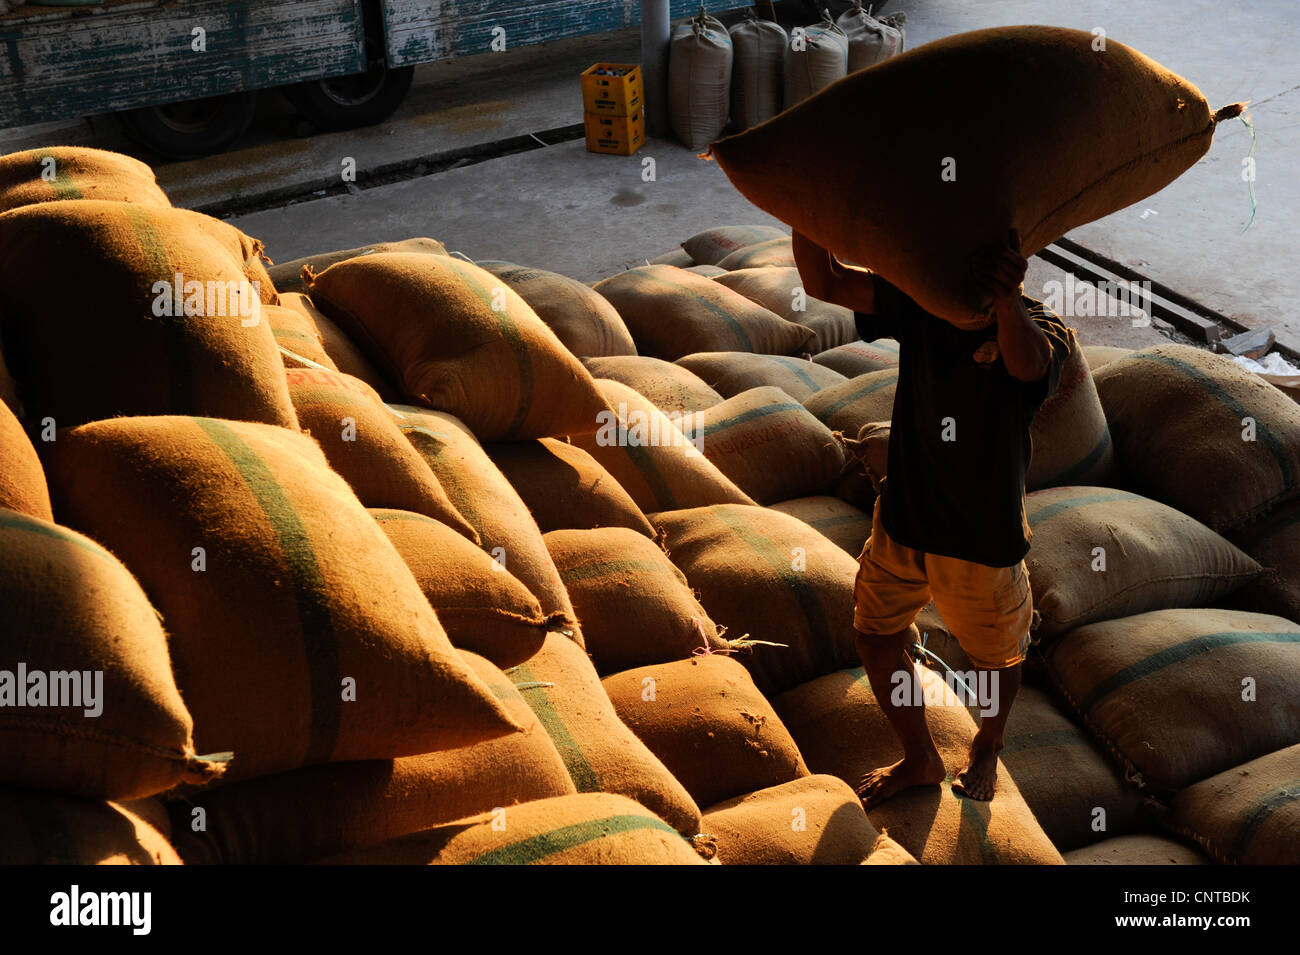 Laos Vientiane rice mill Chengsawang exp-imp co Ltd. , arrival of paddy after harvest for milling - Stock Image